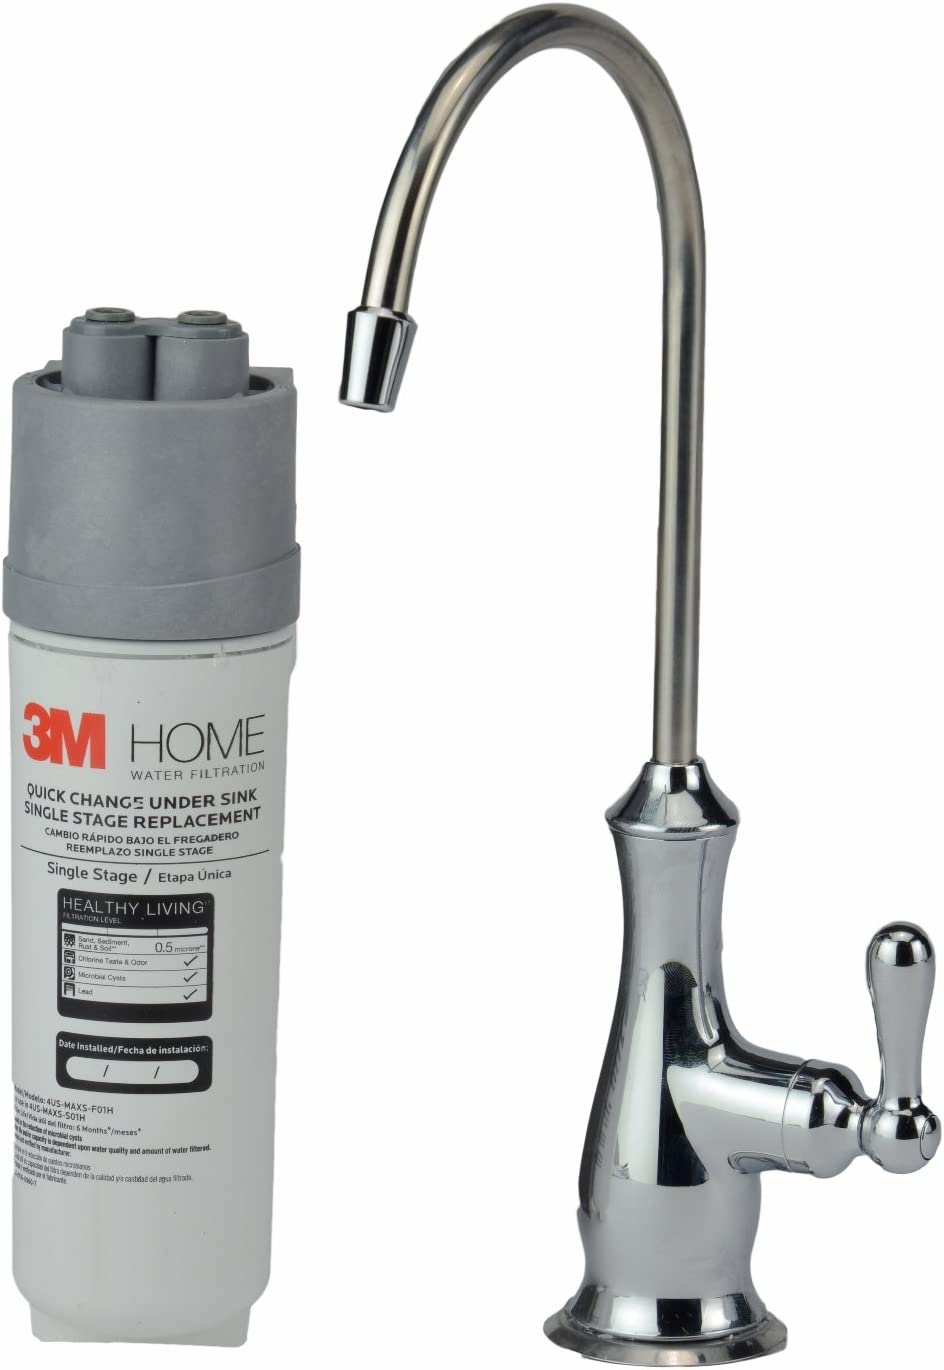 3M 4US-MAXS-S01H Quick Change Single Stage Drinking Water Filter System